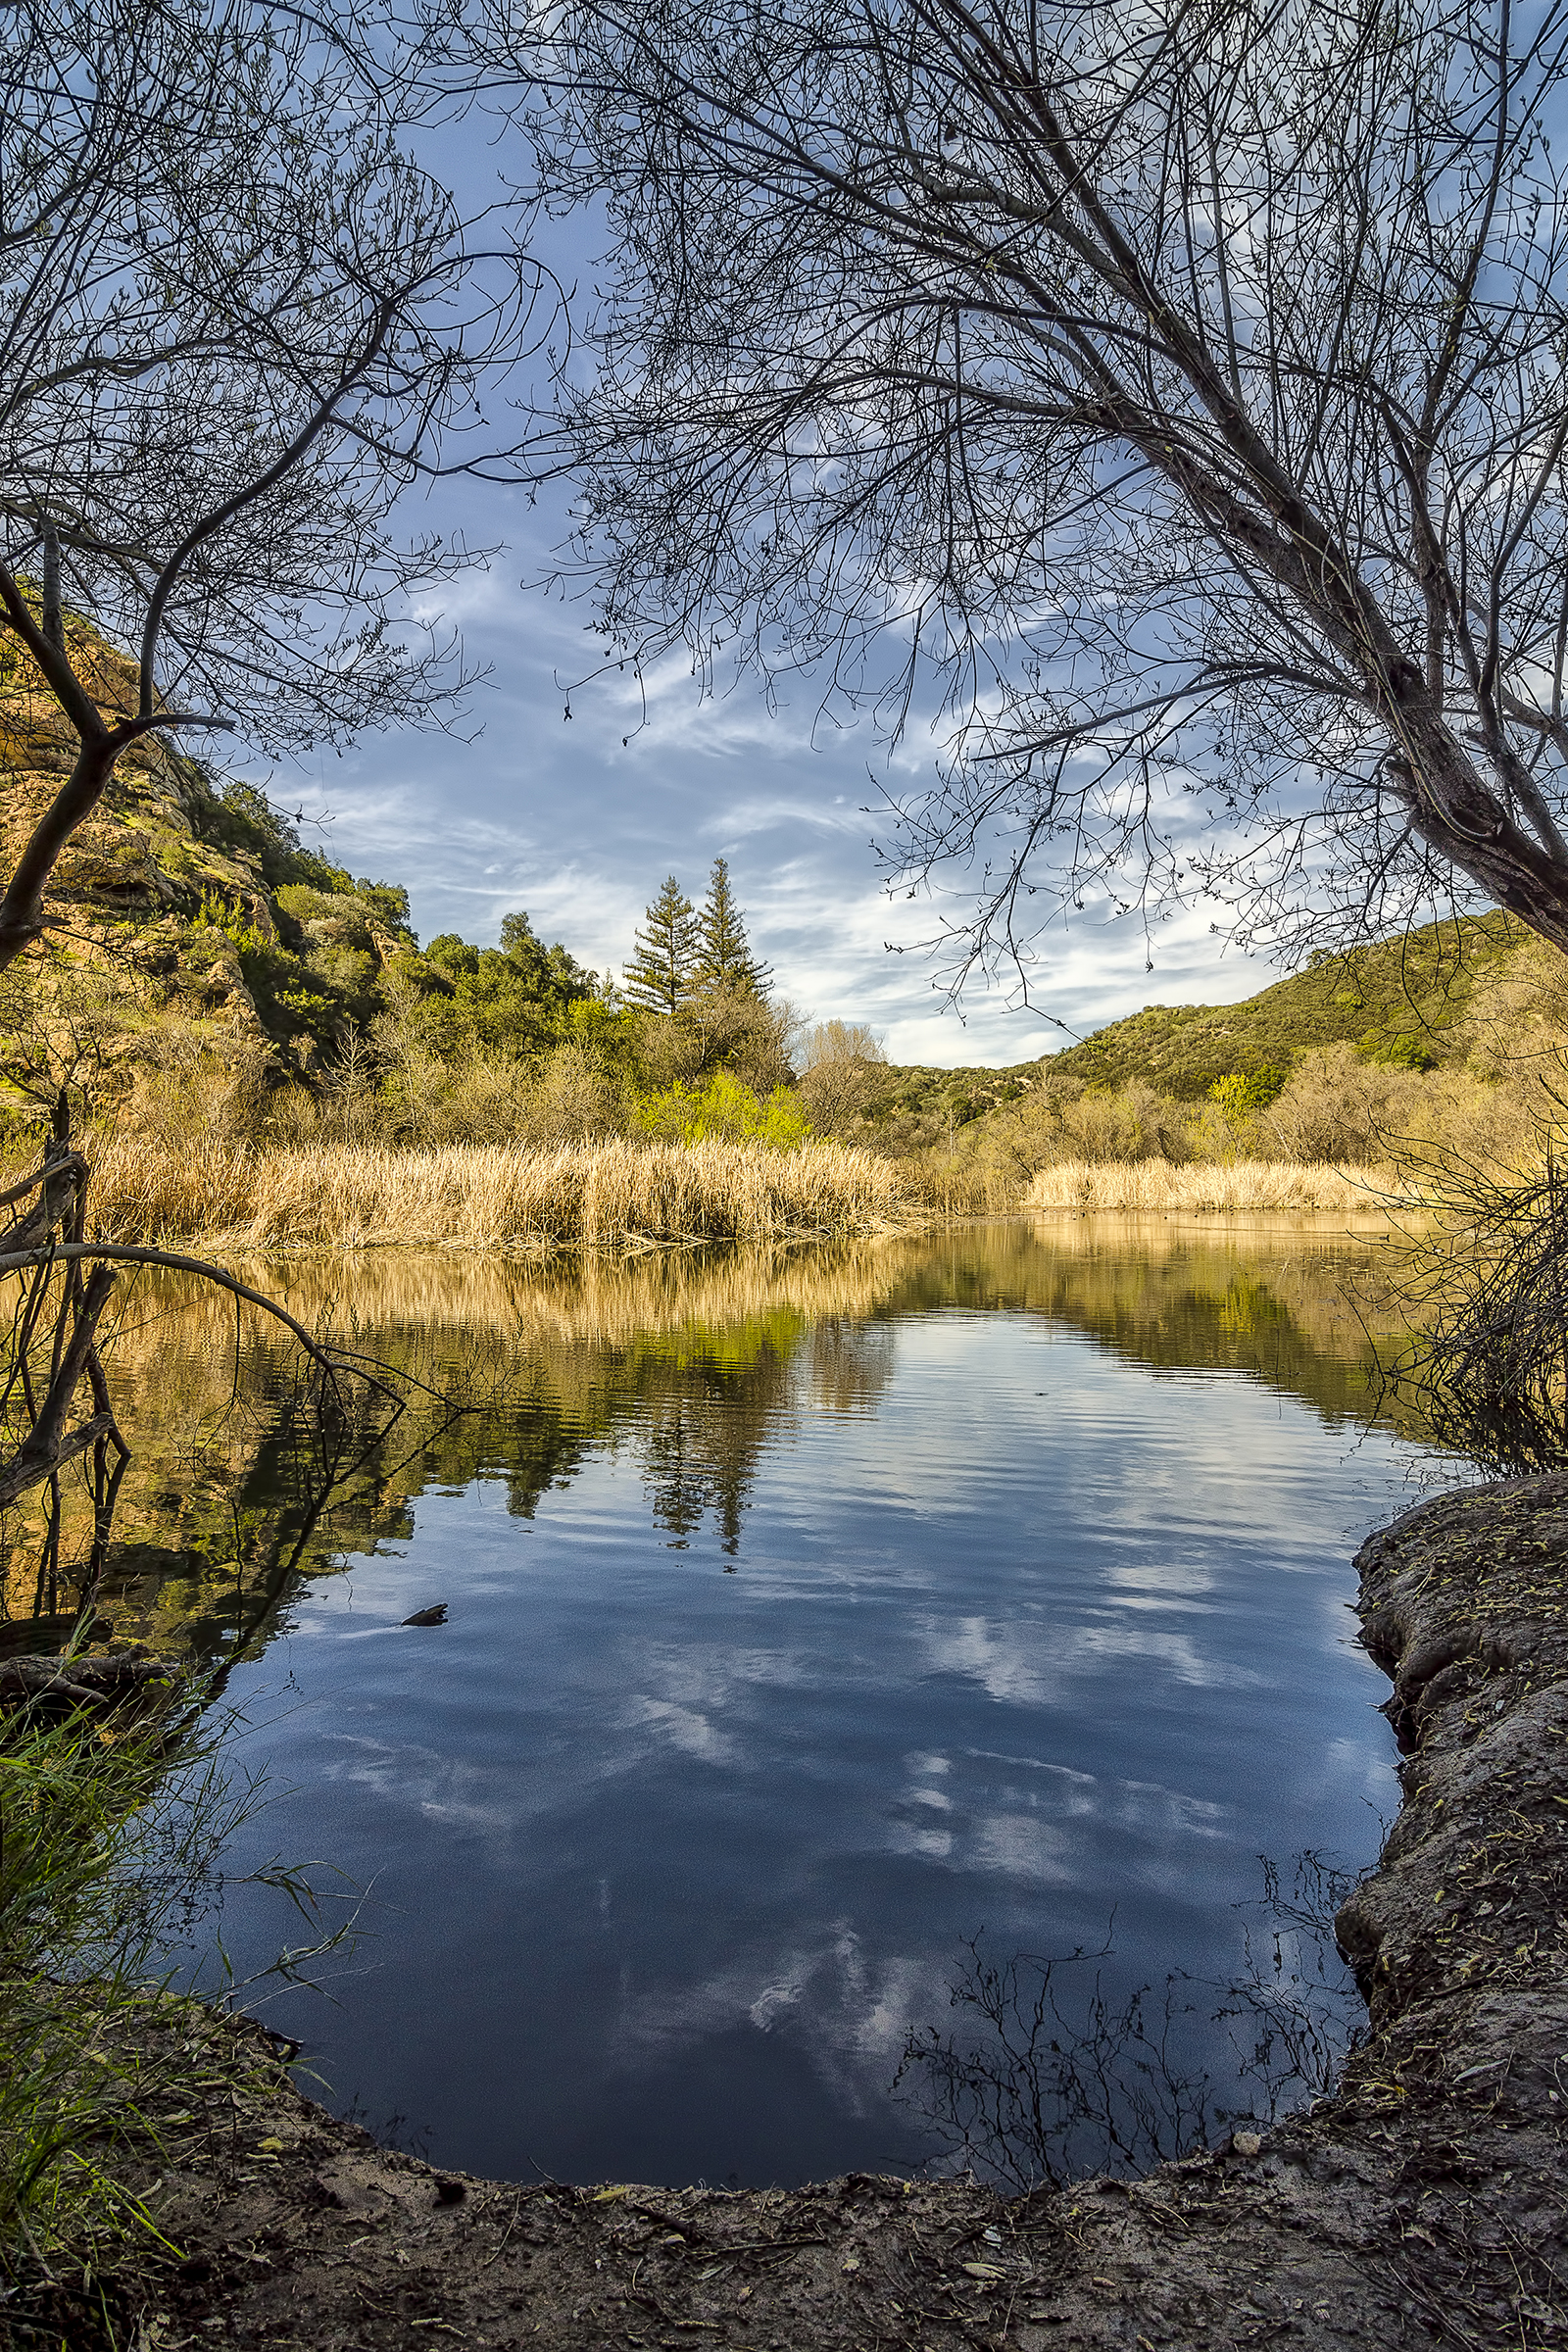 Malibu Creek State Park, California. Century Lake. Wasim Muklashy Photography